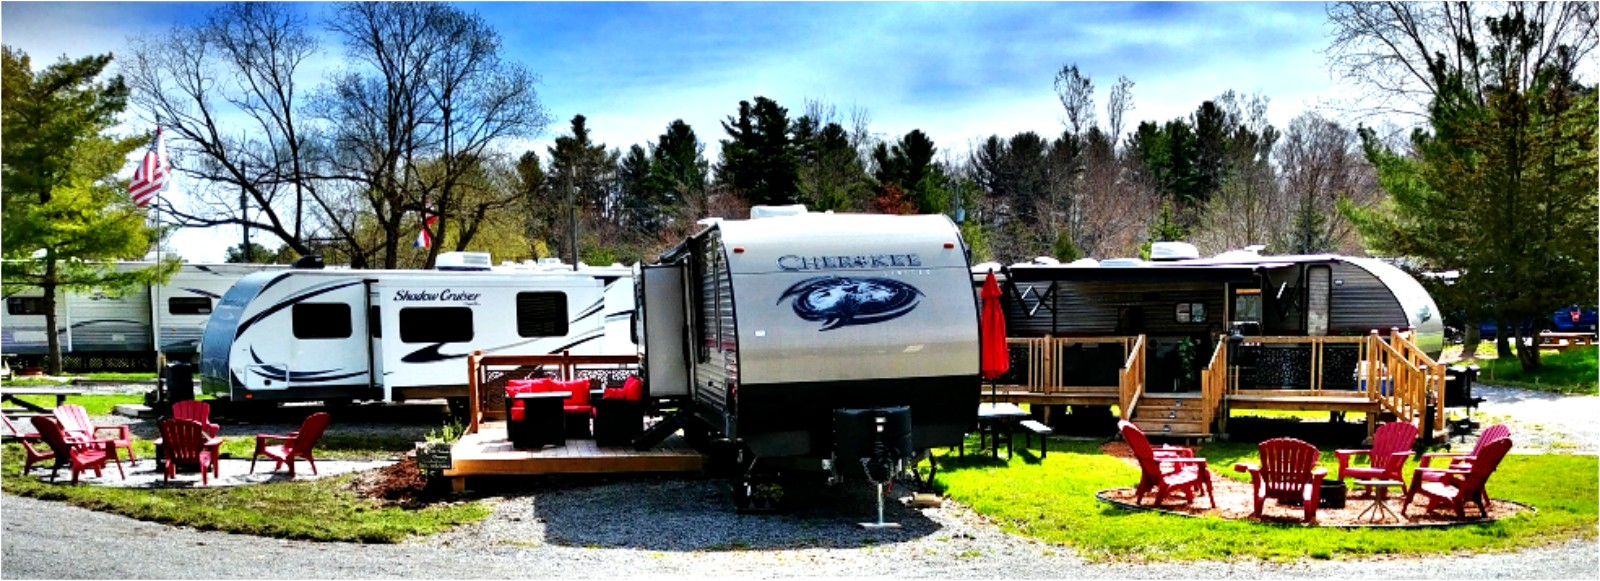 1000 Islands Glamping: Luxury Trailer Rentals Featured Image